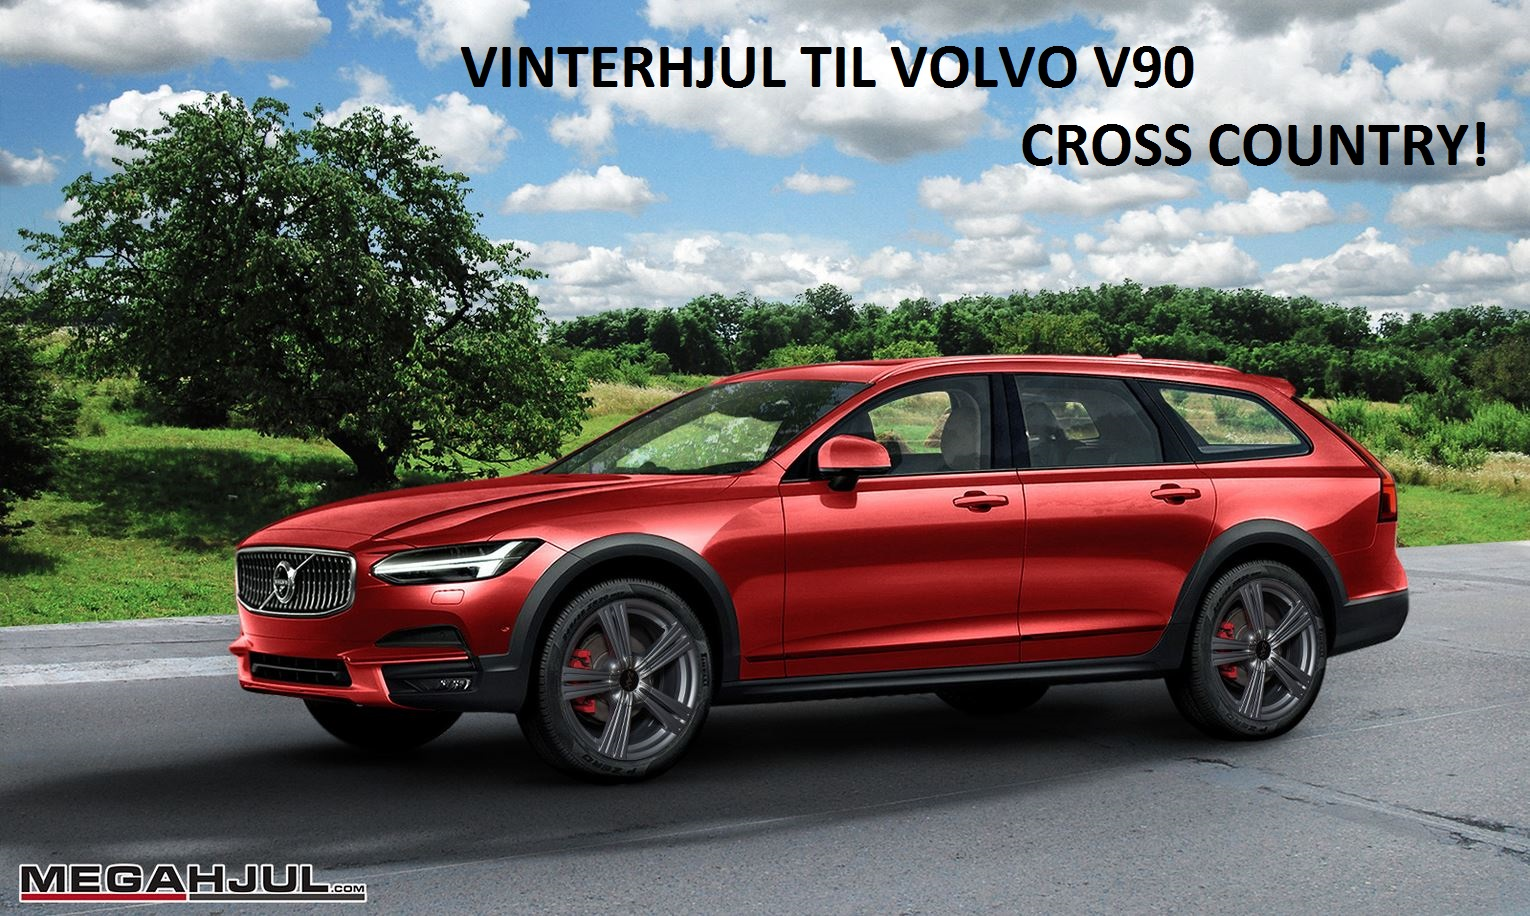 vinterhjul-til-volvo-v90-cross-country